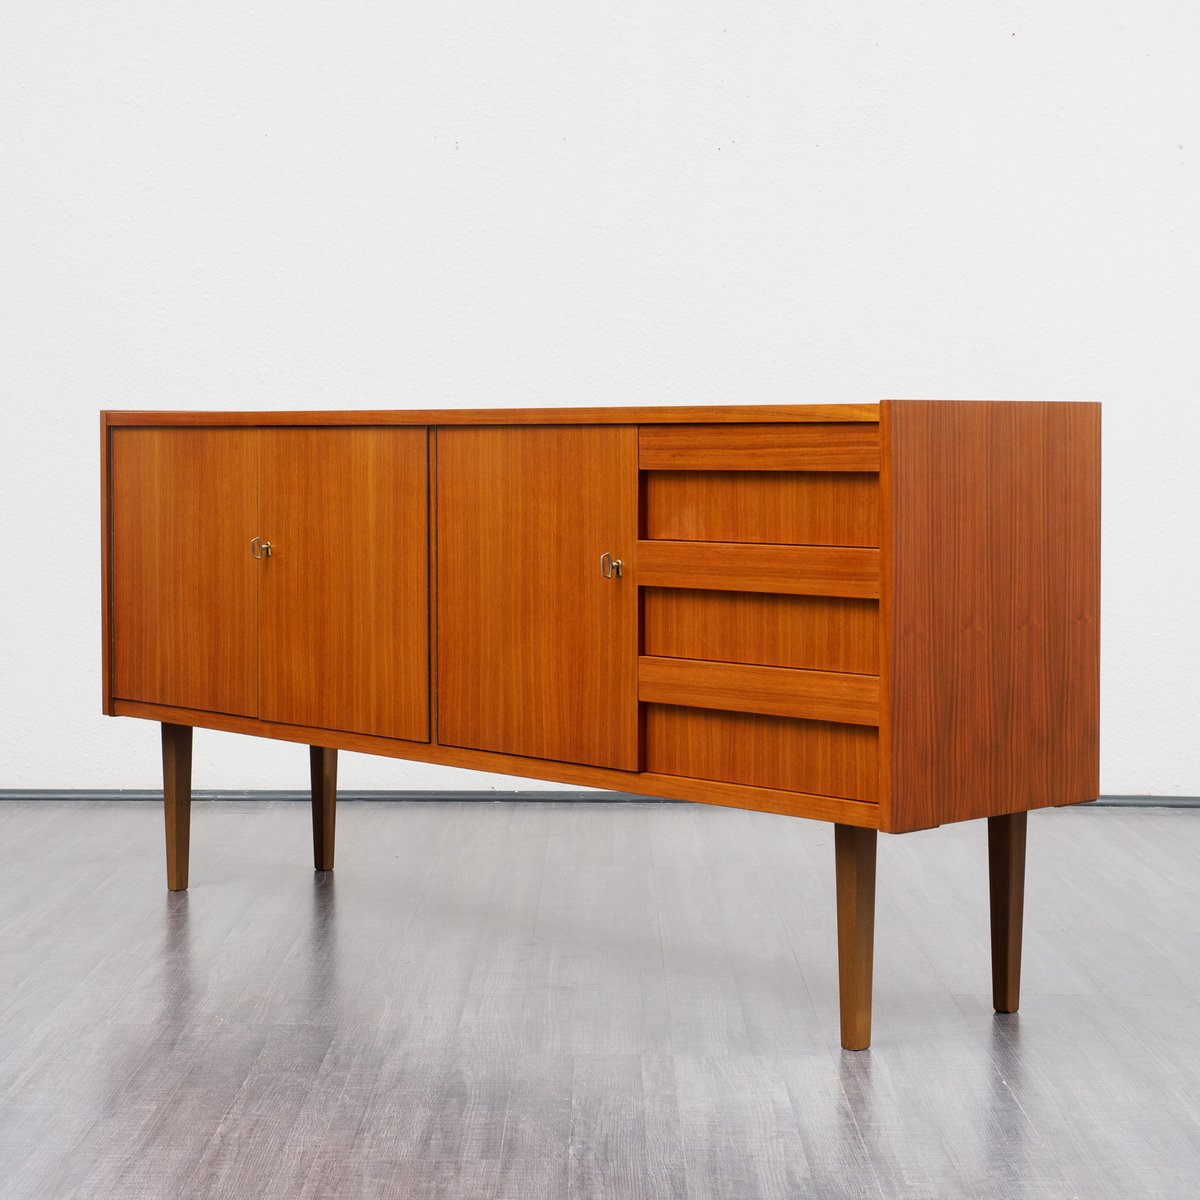 Walnut sideboard 1960s for sale at pamono for Sideboard 60er jahre